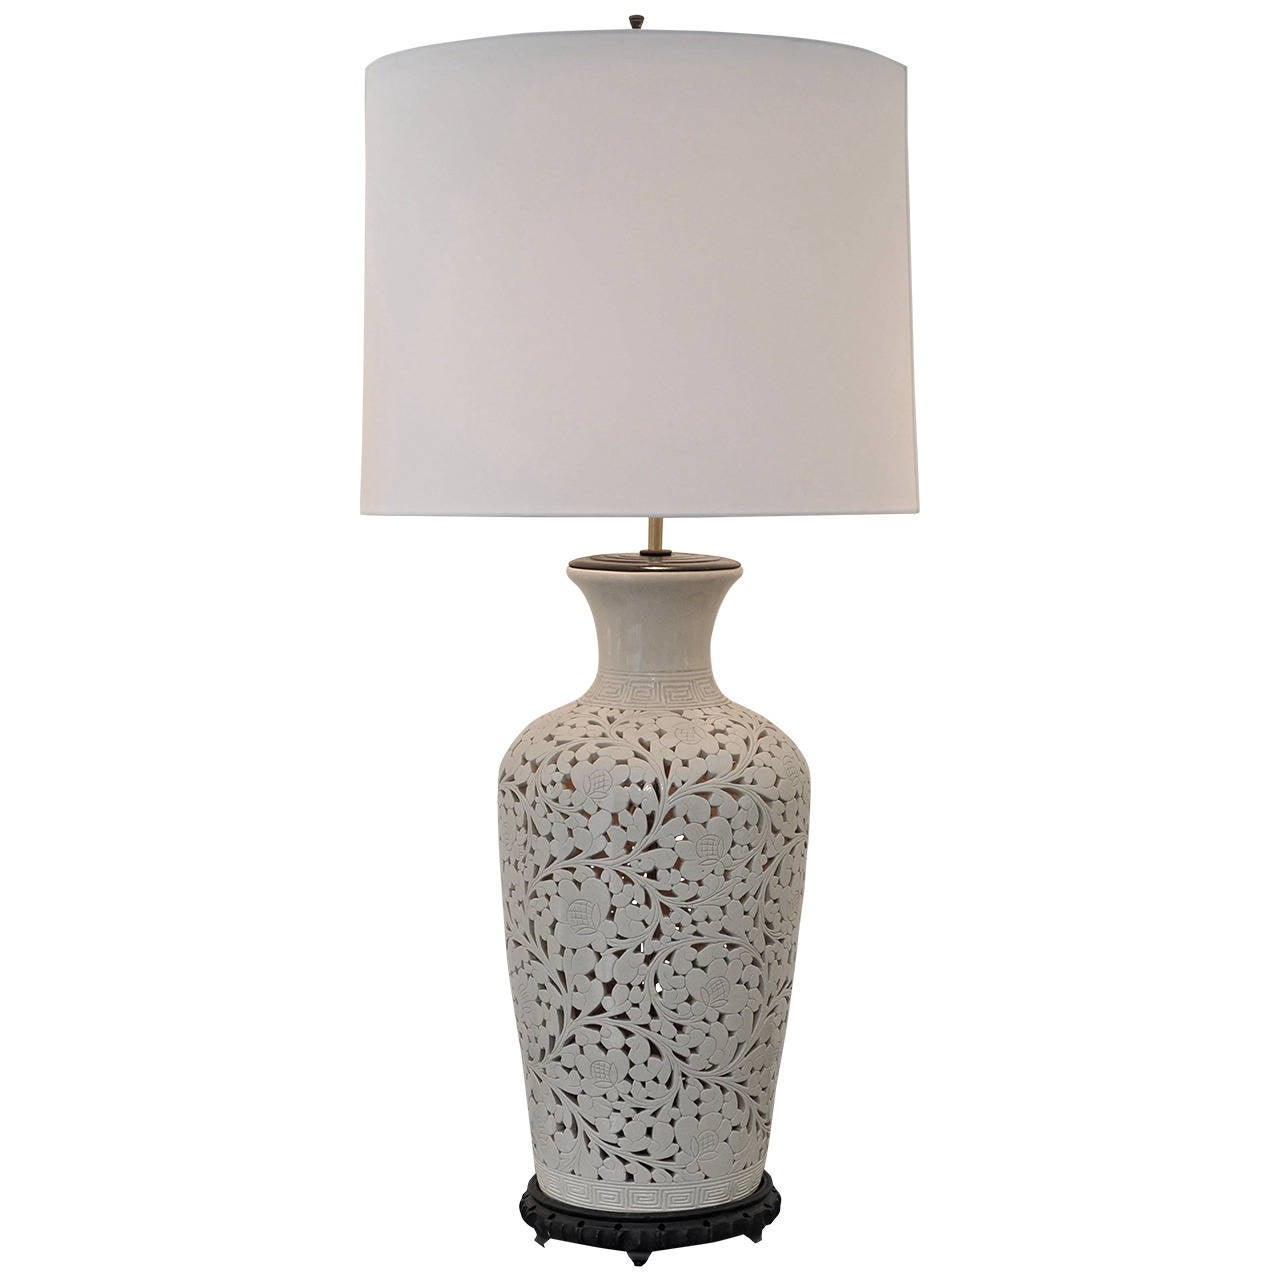 Ceramic Lamp with Interior Light For Sale at 1stdibs